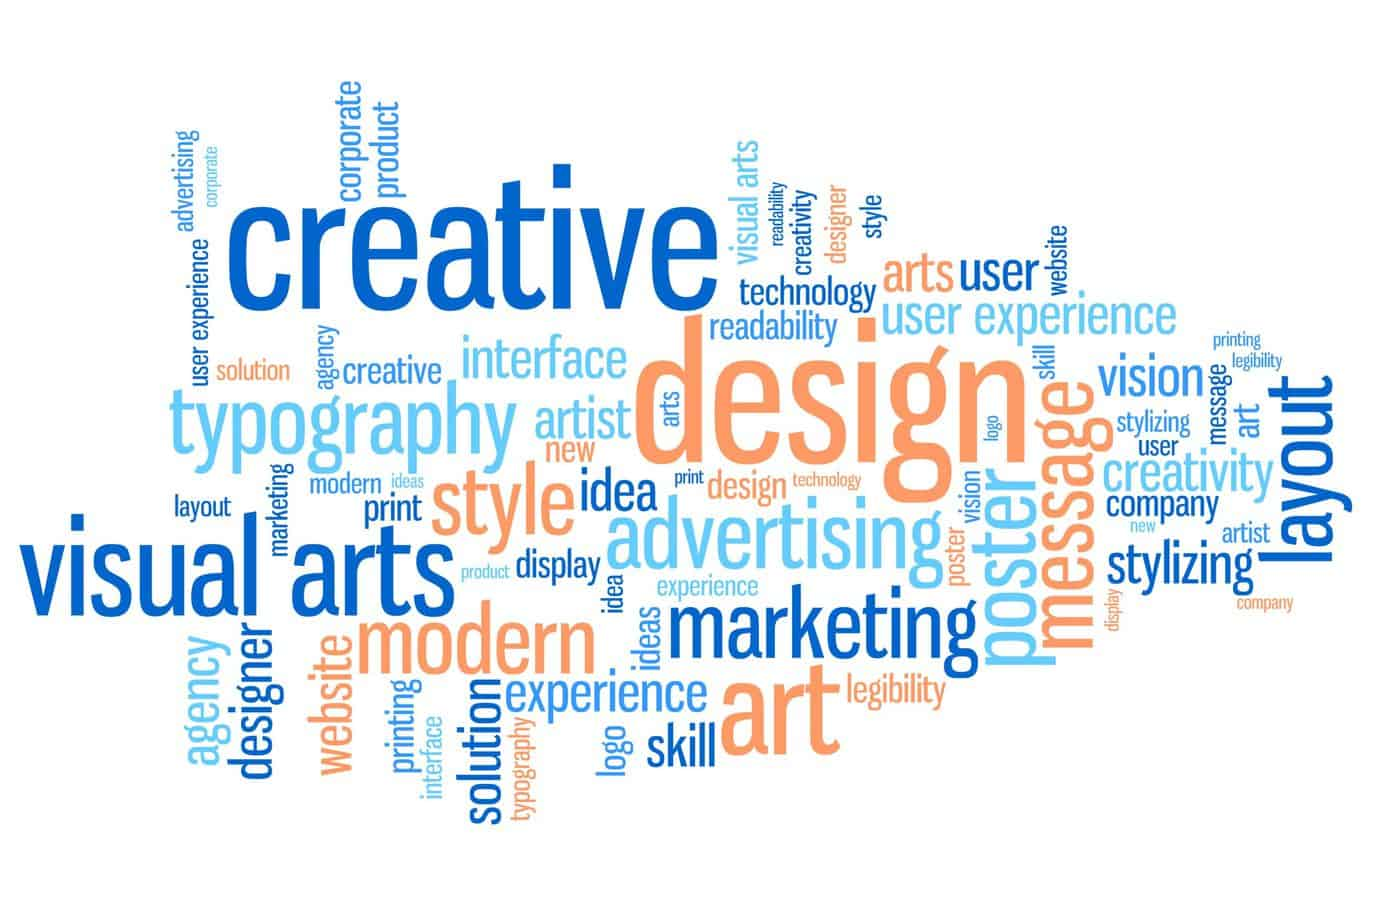 Design and visual arts word cloud illustration. Word collage concept.